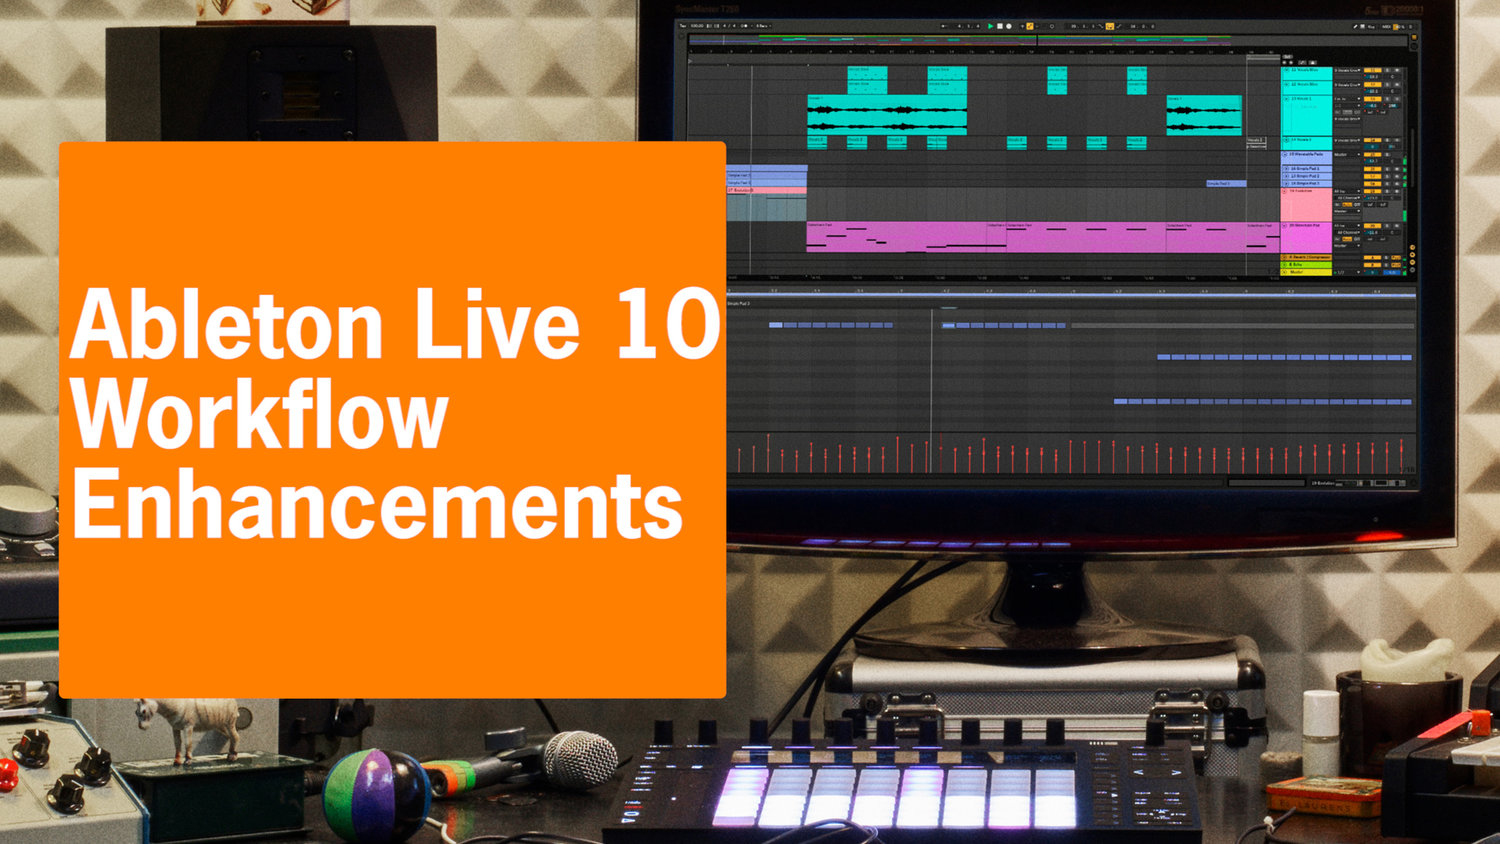 My 10 Favorite Workflow Enhancements in Ableton Live 10